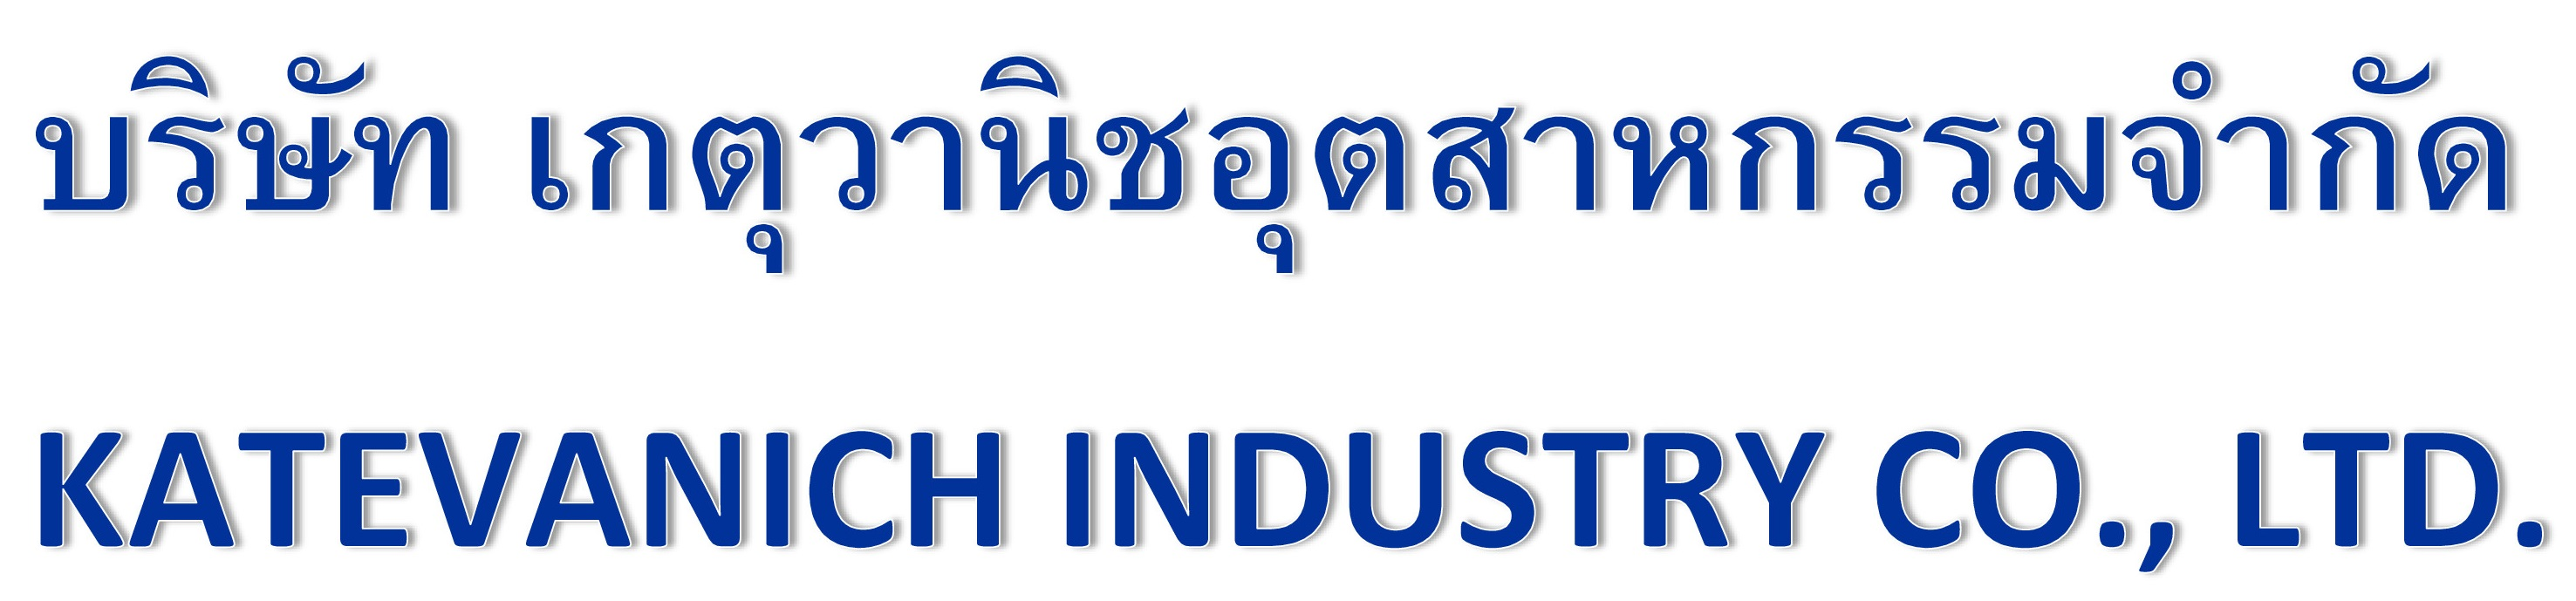 Katevanich Industry Co., Ltd. Head Office